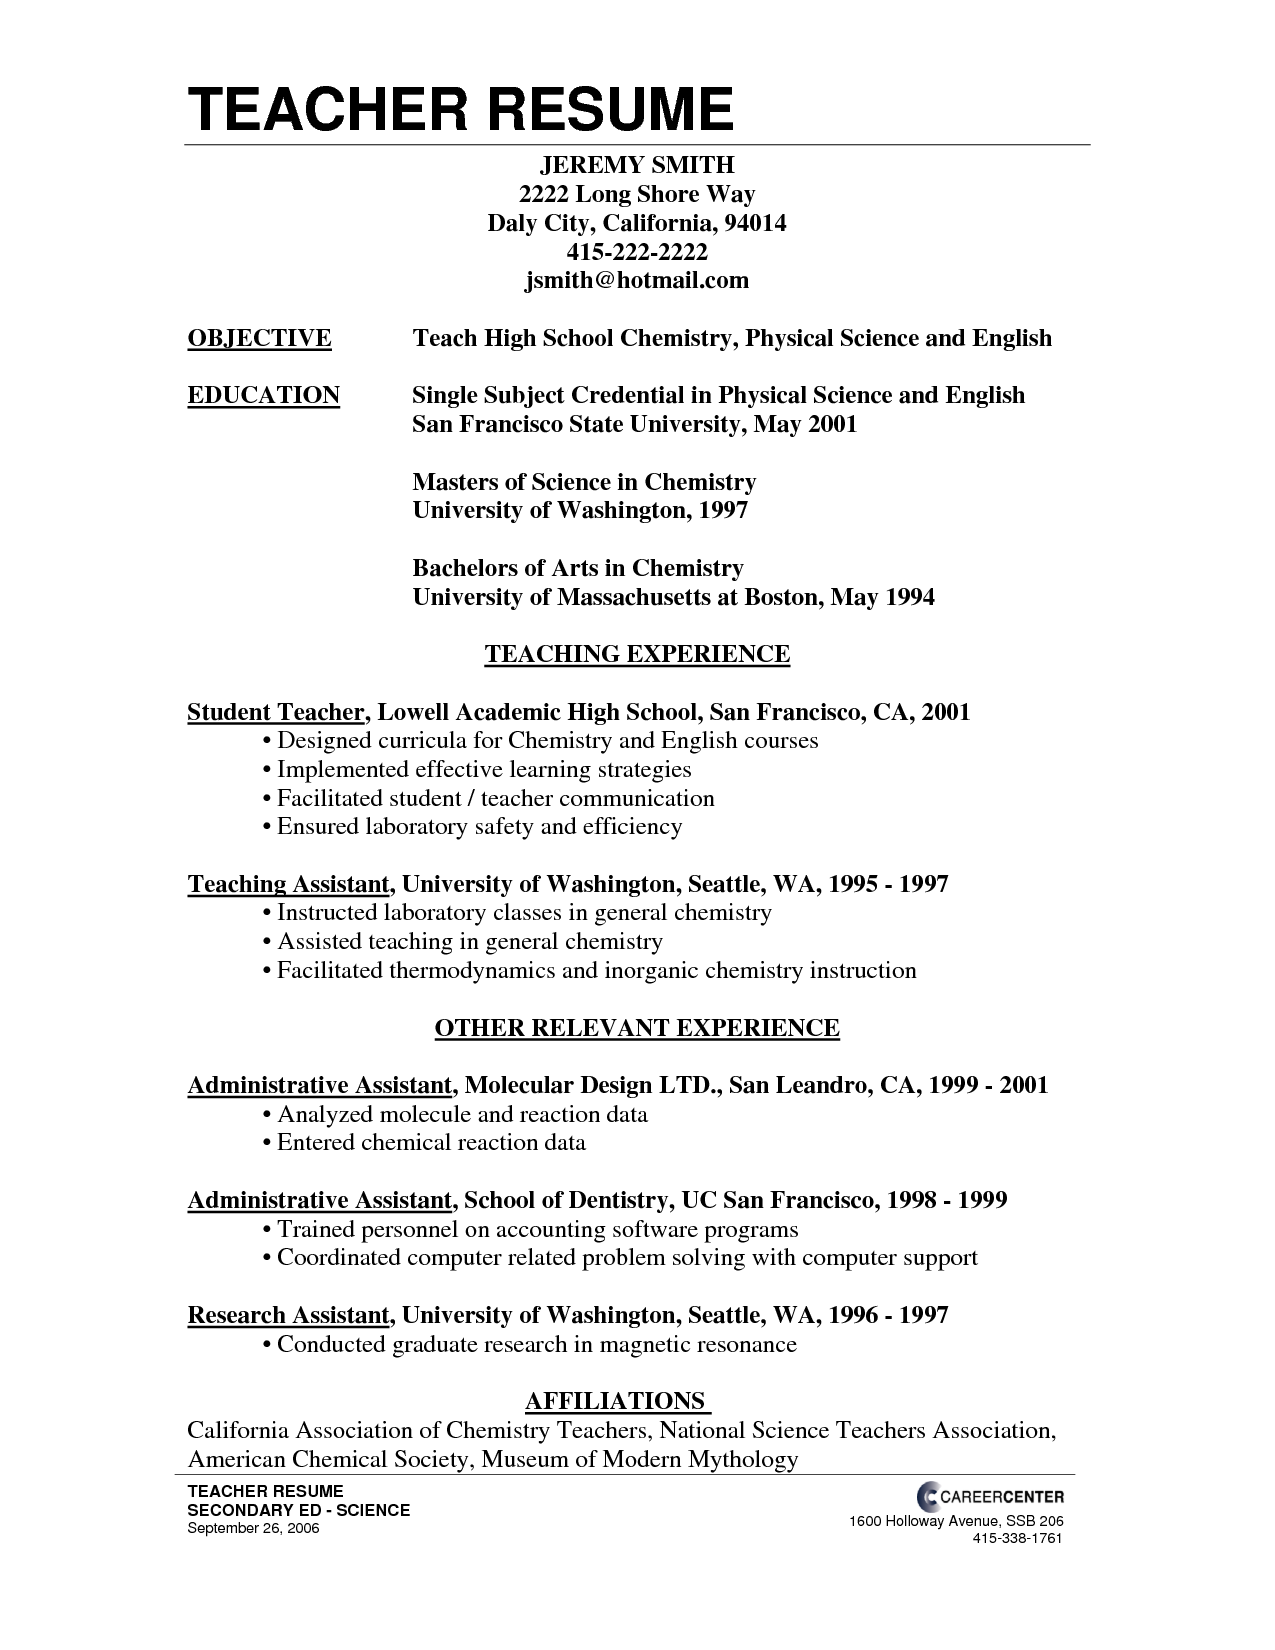 Teachers cv httpteachers resumes teachers teachers cv httpteachers resumes teacher resume templateteacher yelopaper Image collections